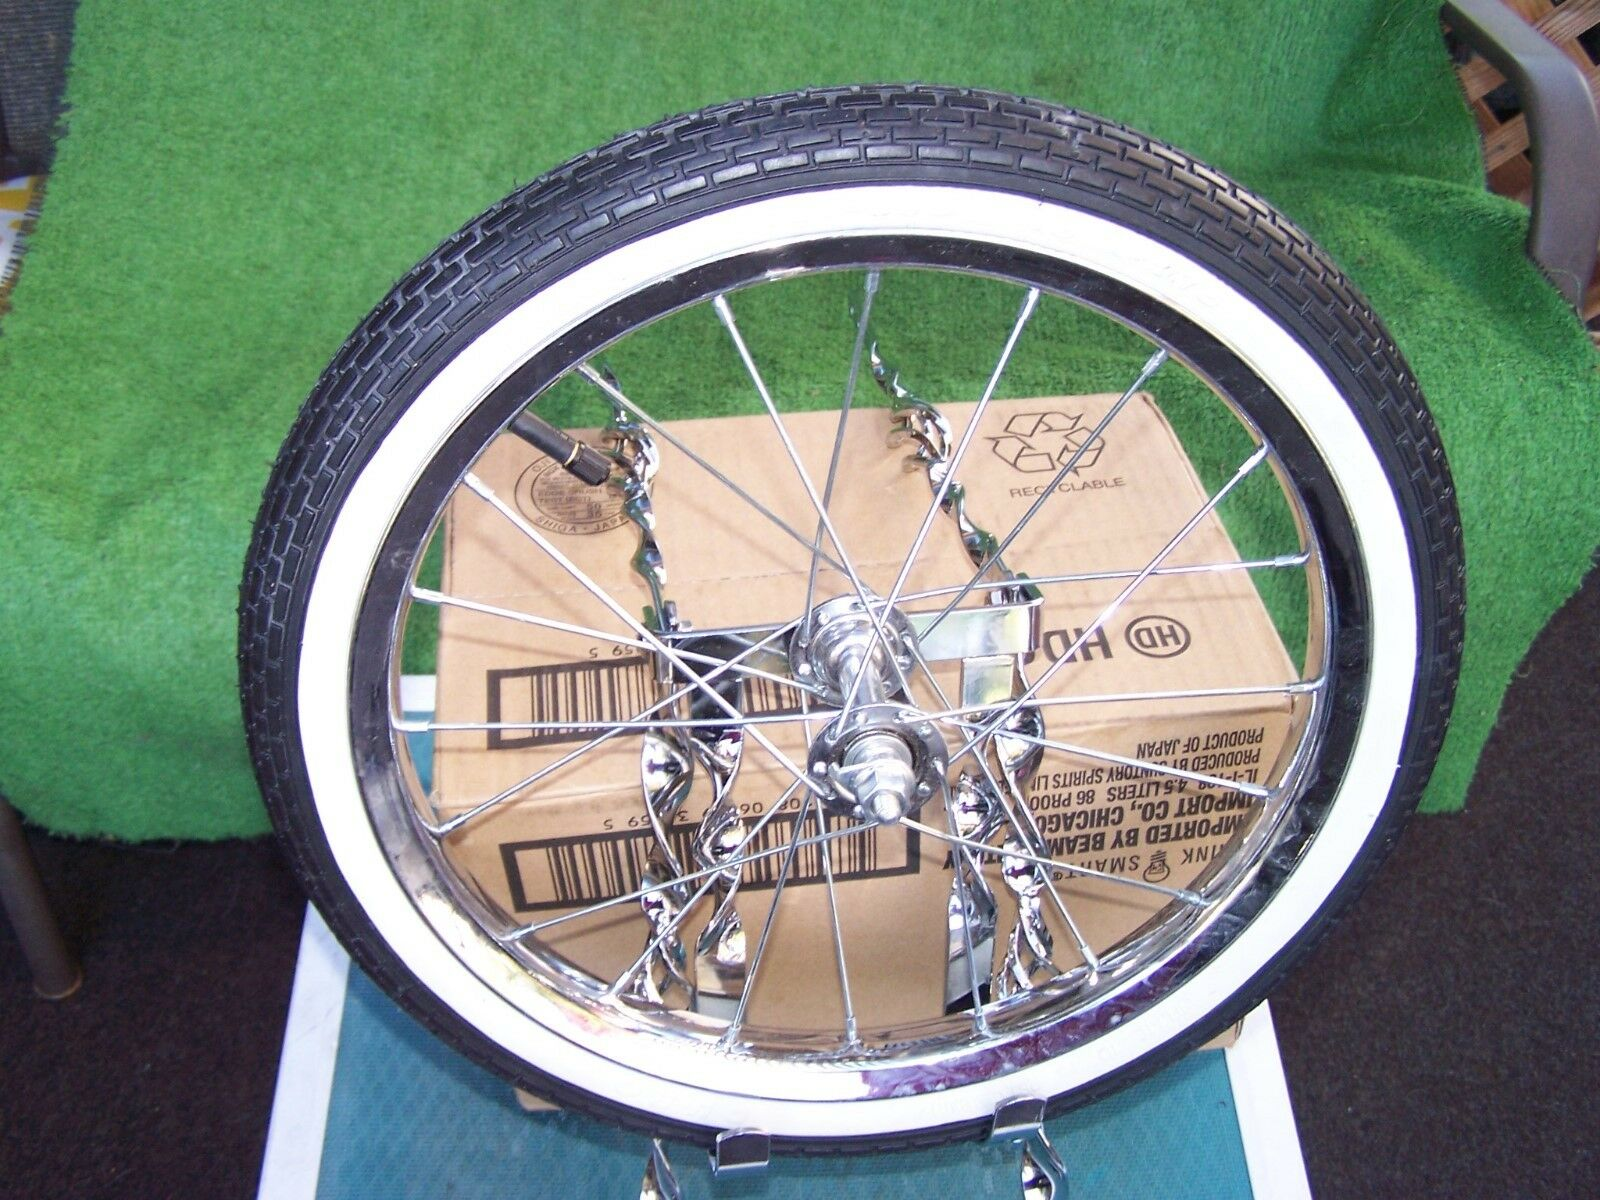 CAGE   SPARE TIRE  KIT TWISTED WITH WHEEL TIRE  BIKE  BMX LOWRIDER NEW  at cheap